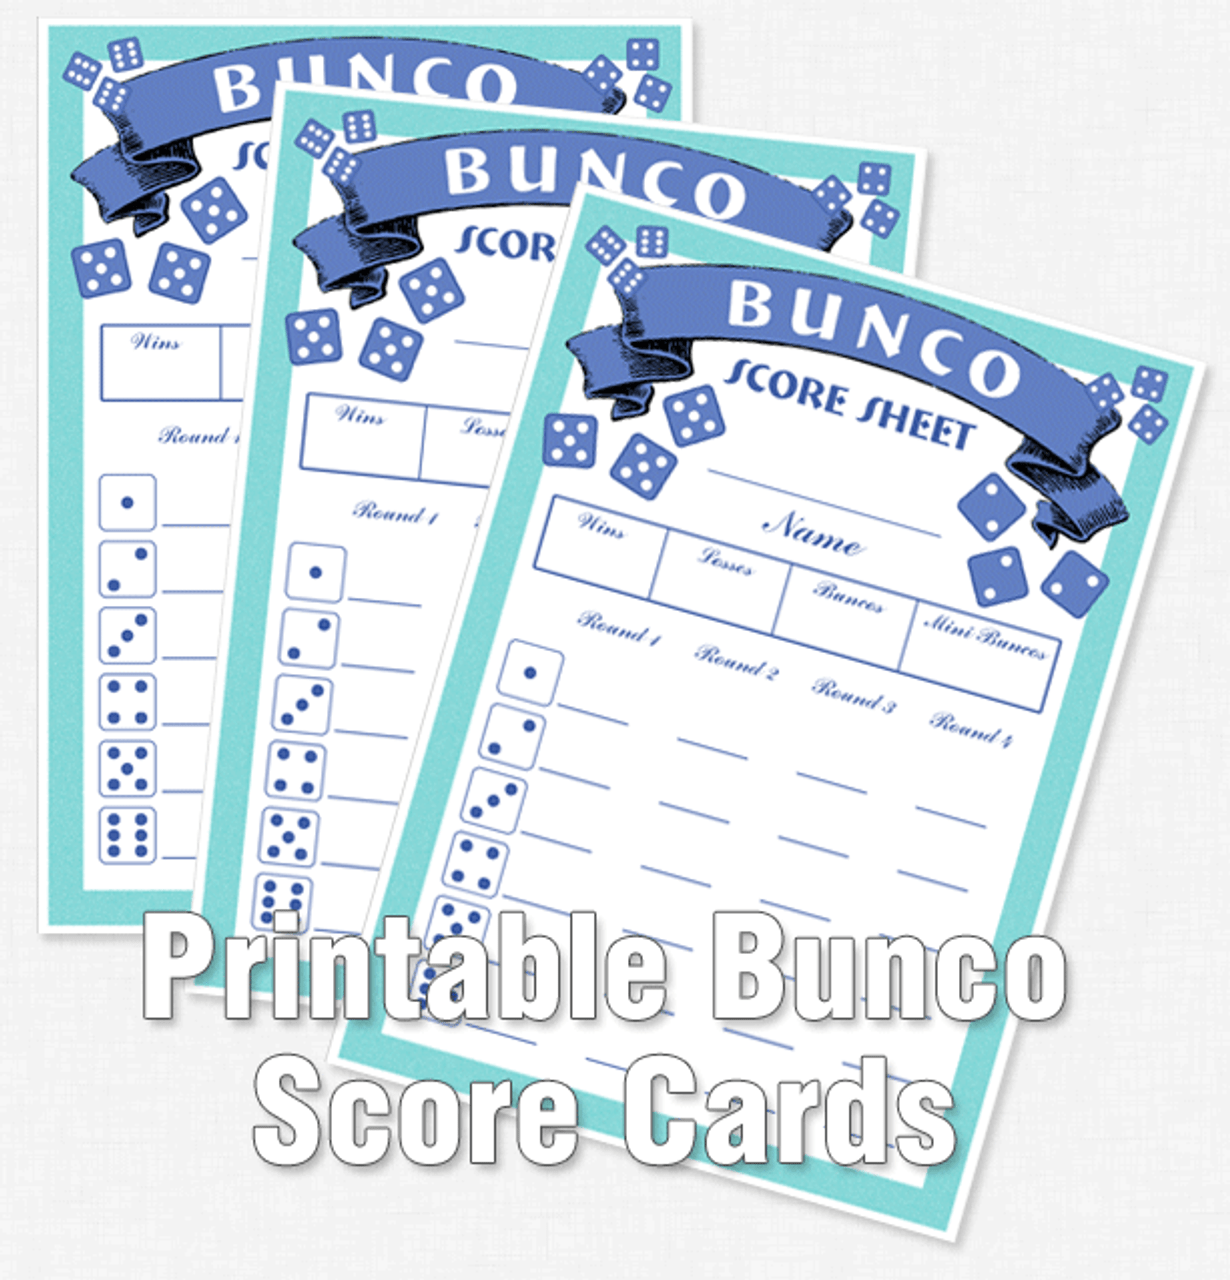 picture relating to Printable Bunco Score Cards named Printable Bunco Rating Playing cards